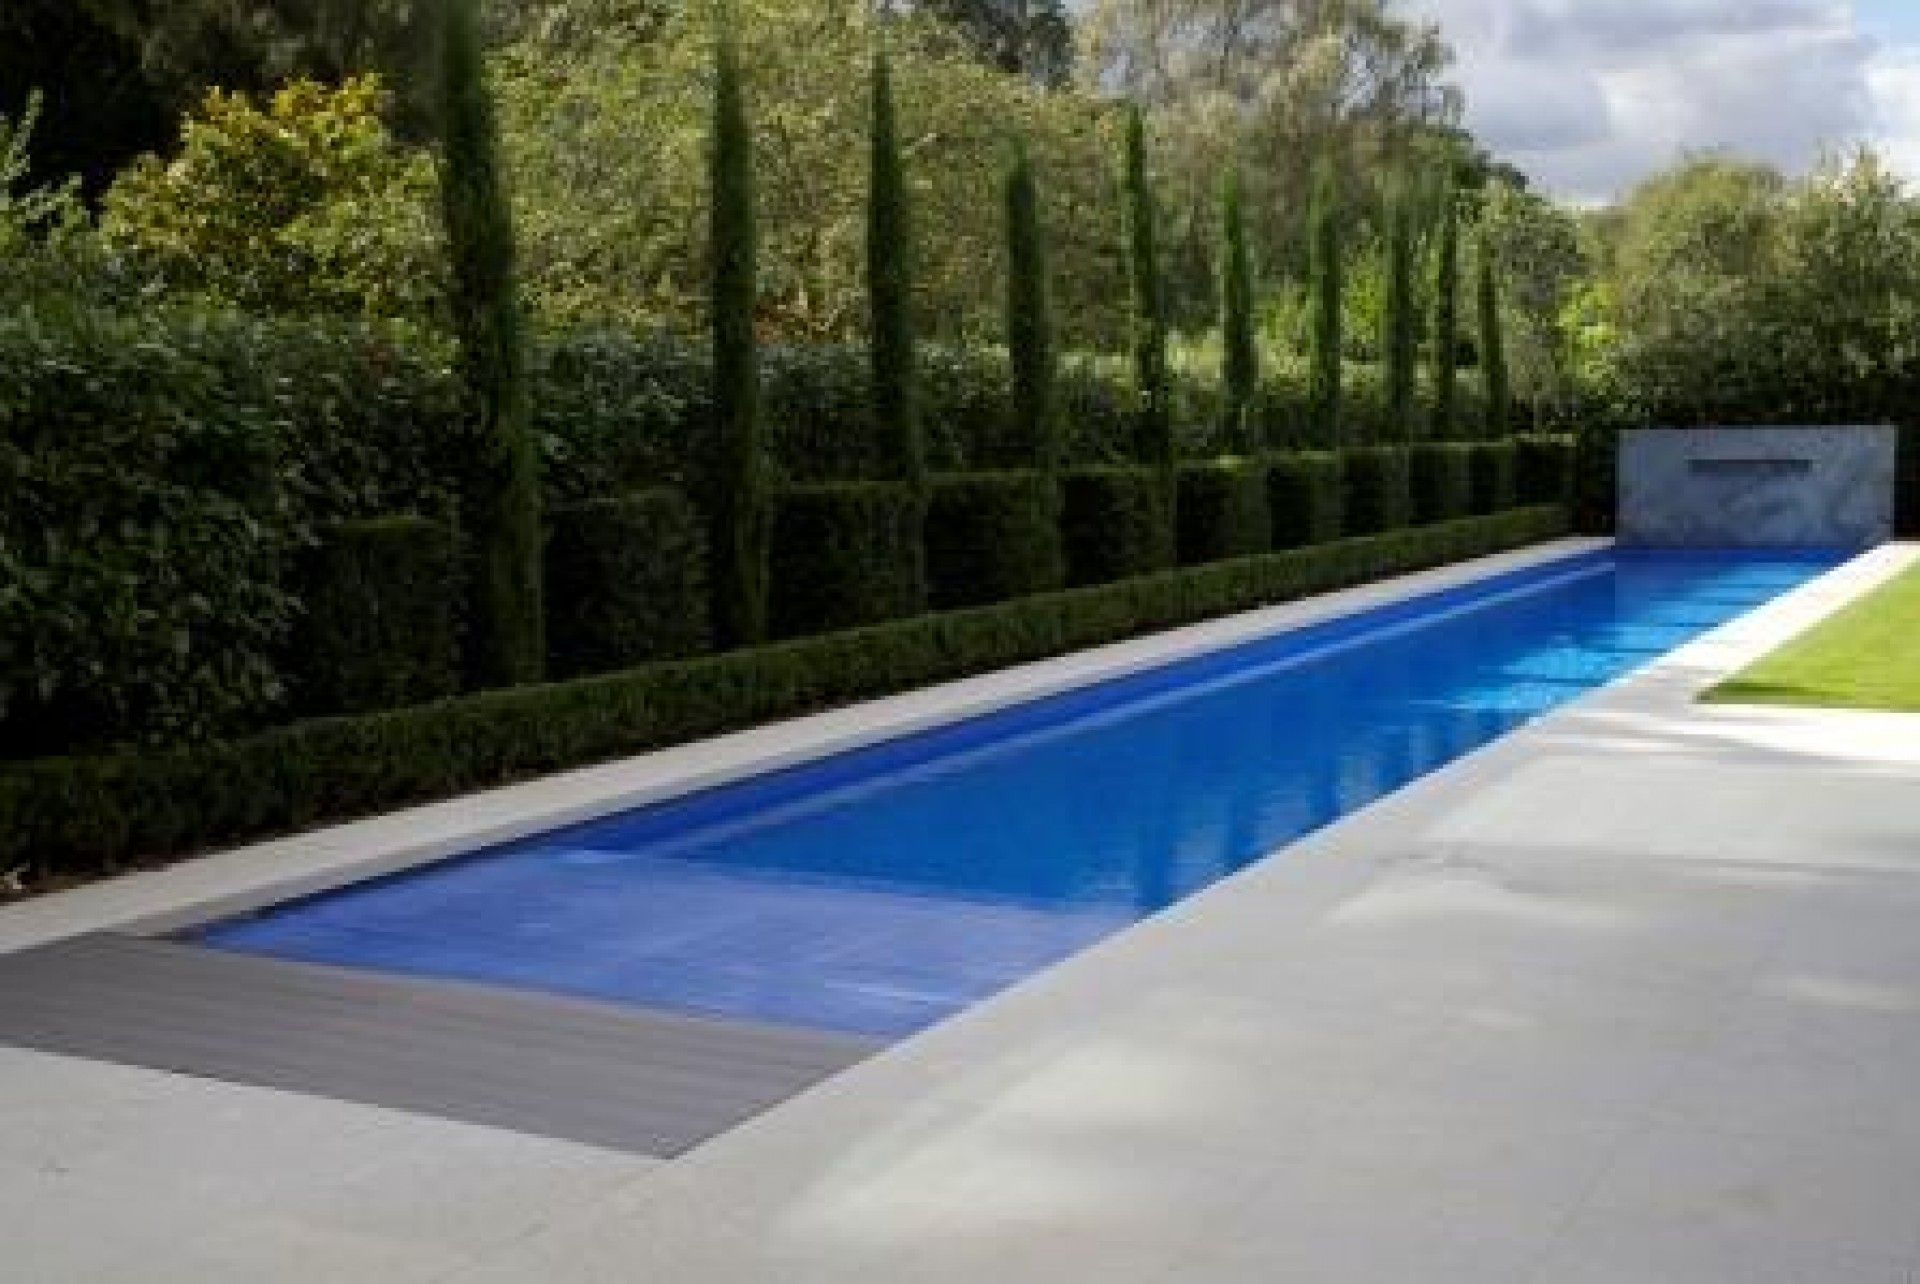 outdoor pool - Outdoor Swimming Pool Designs